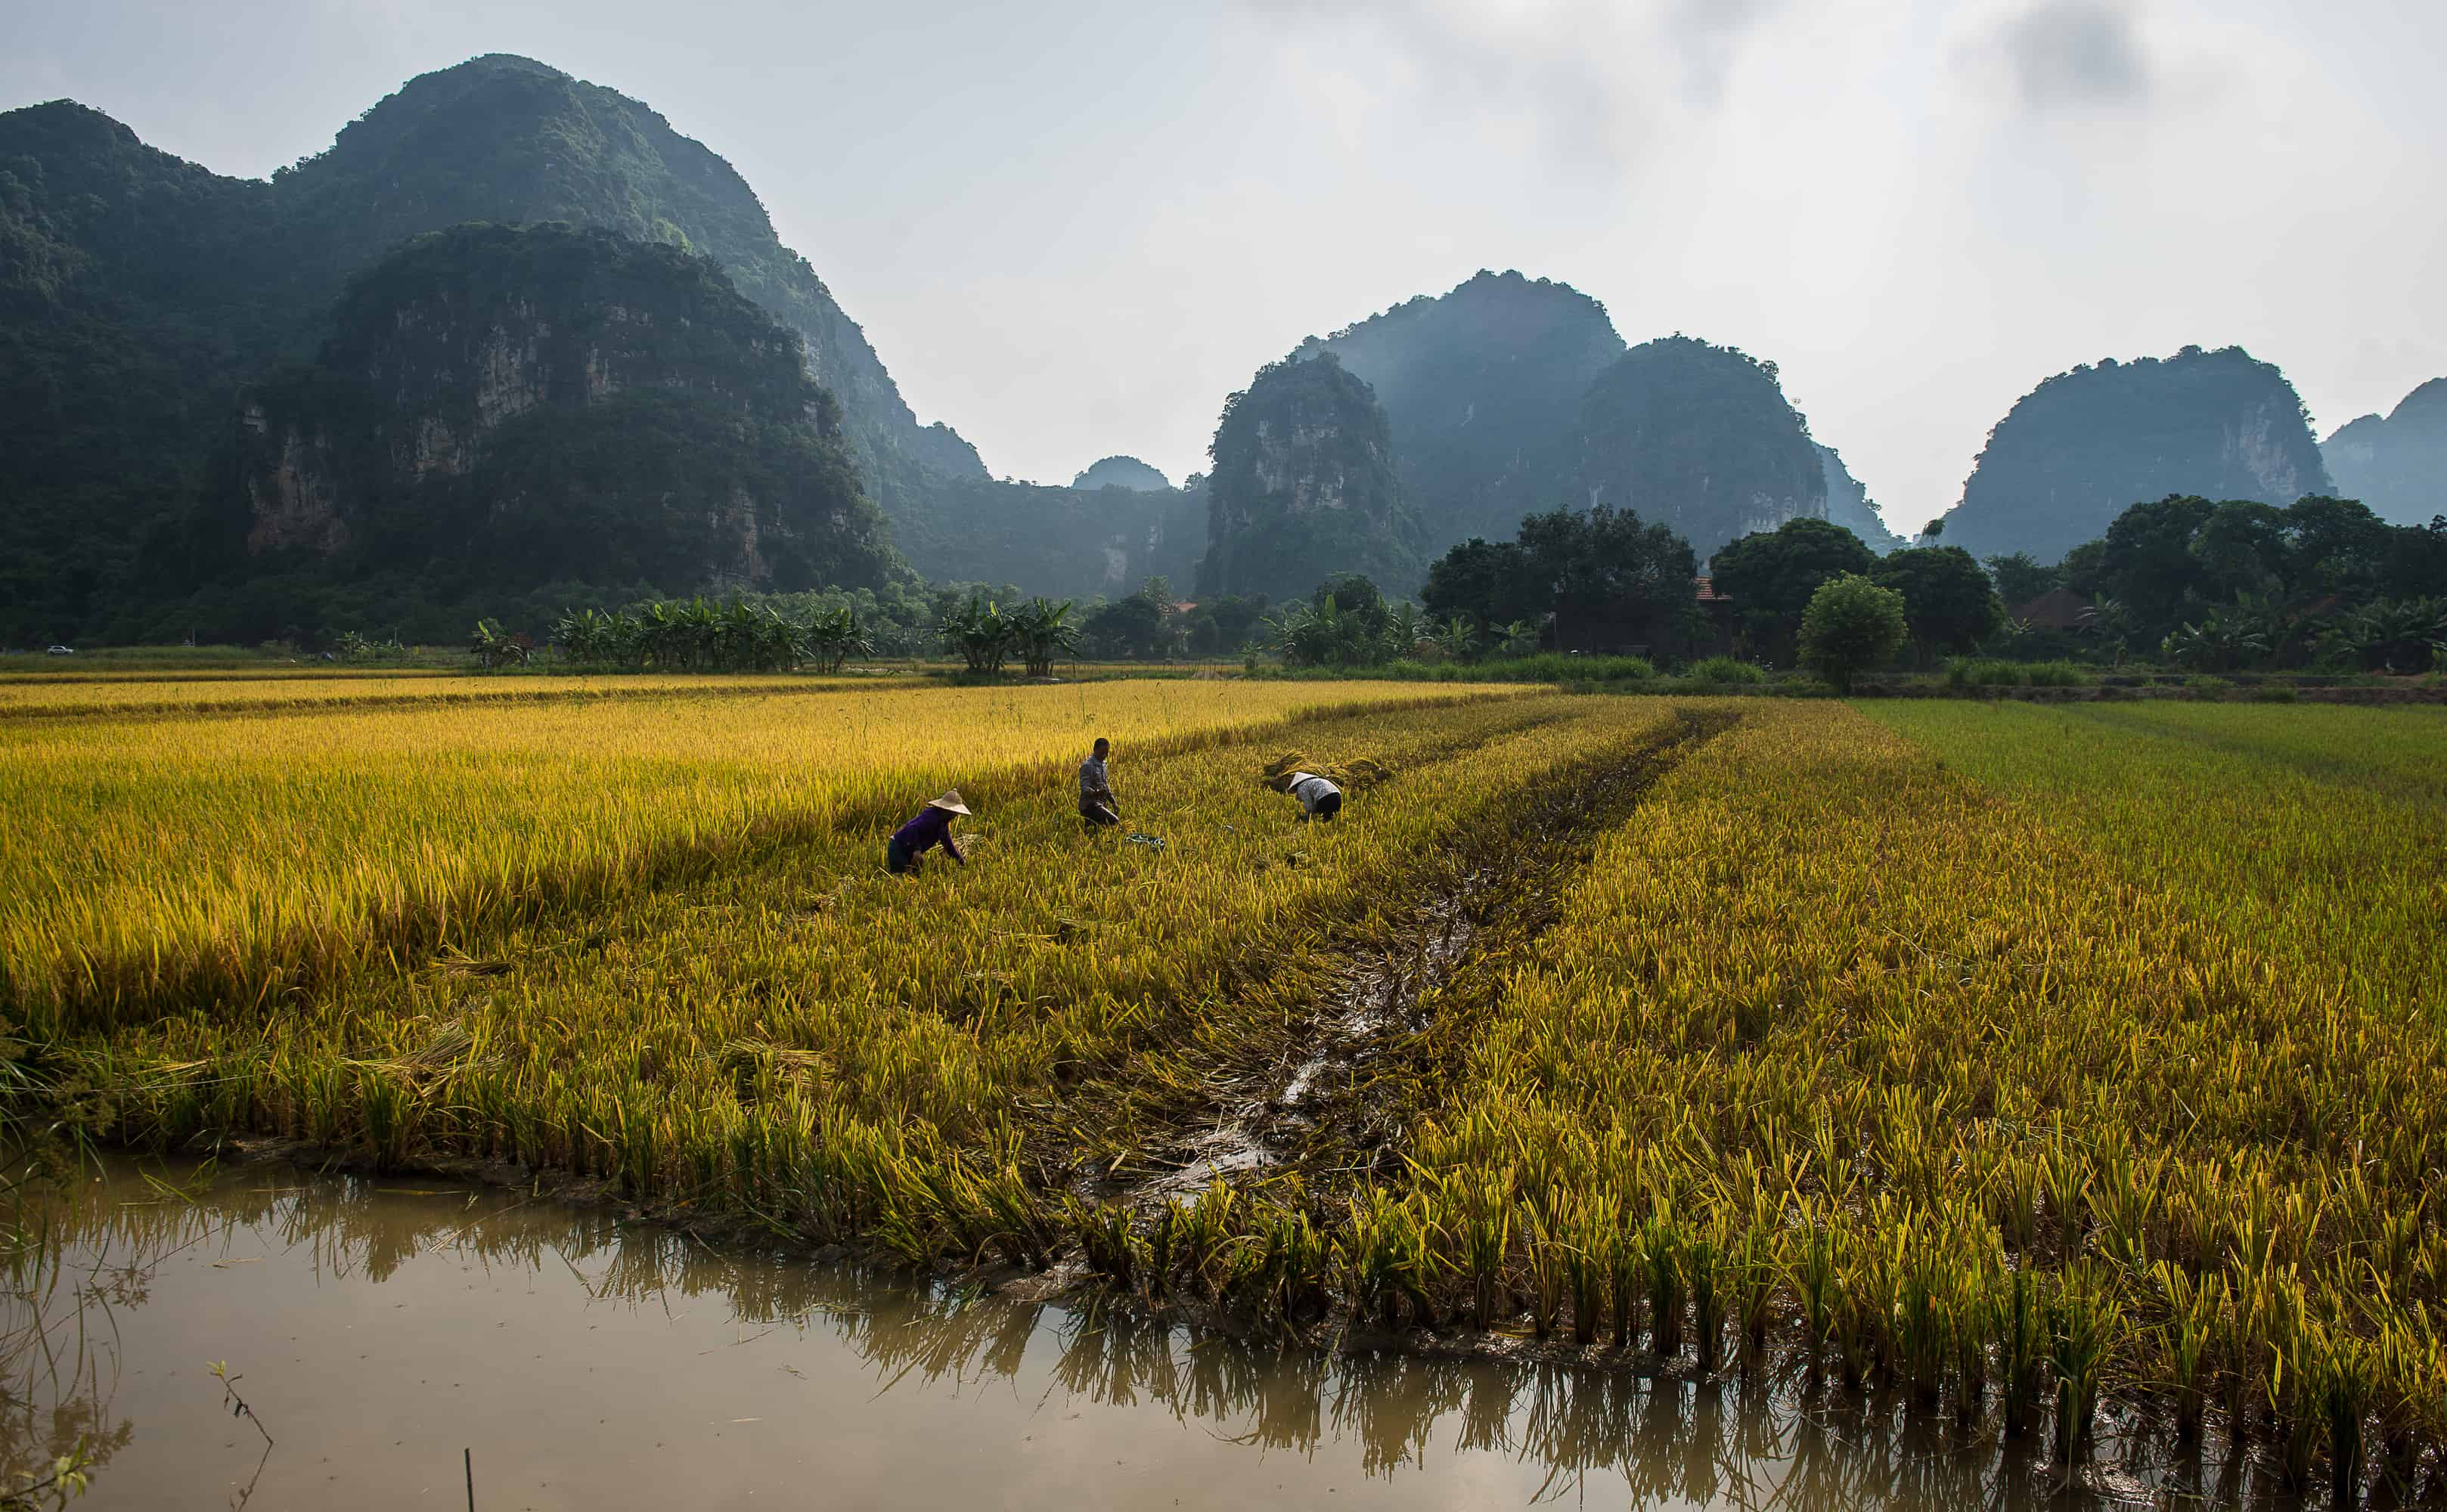 Trang An Ecosystem in Ninh Binh, an alternative water based experience to Halong Bay